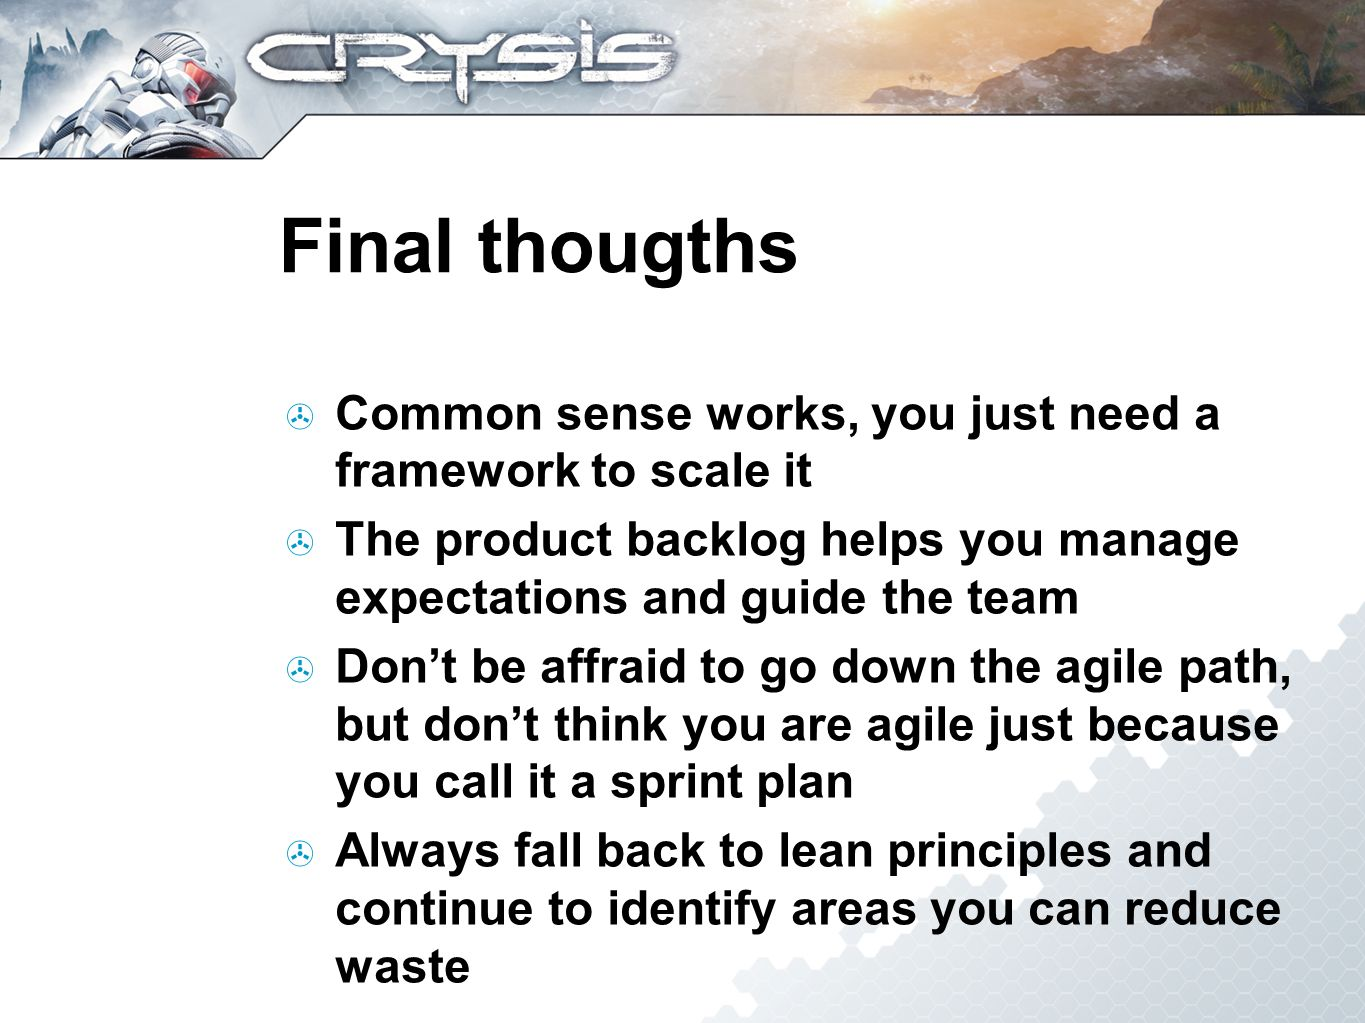 Final thougths Common sense works, you just need a framework to scale it The product backlog helps you manage expectations and guide the team Dont be affraid to go down the agile path, but dont think you are agile just because you call it a sprint plan Always fall back to lean principles and continue to identify areas you can reduce waste